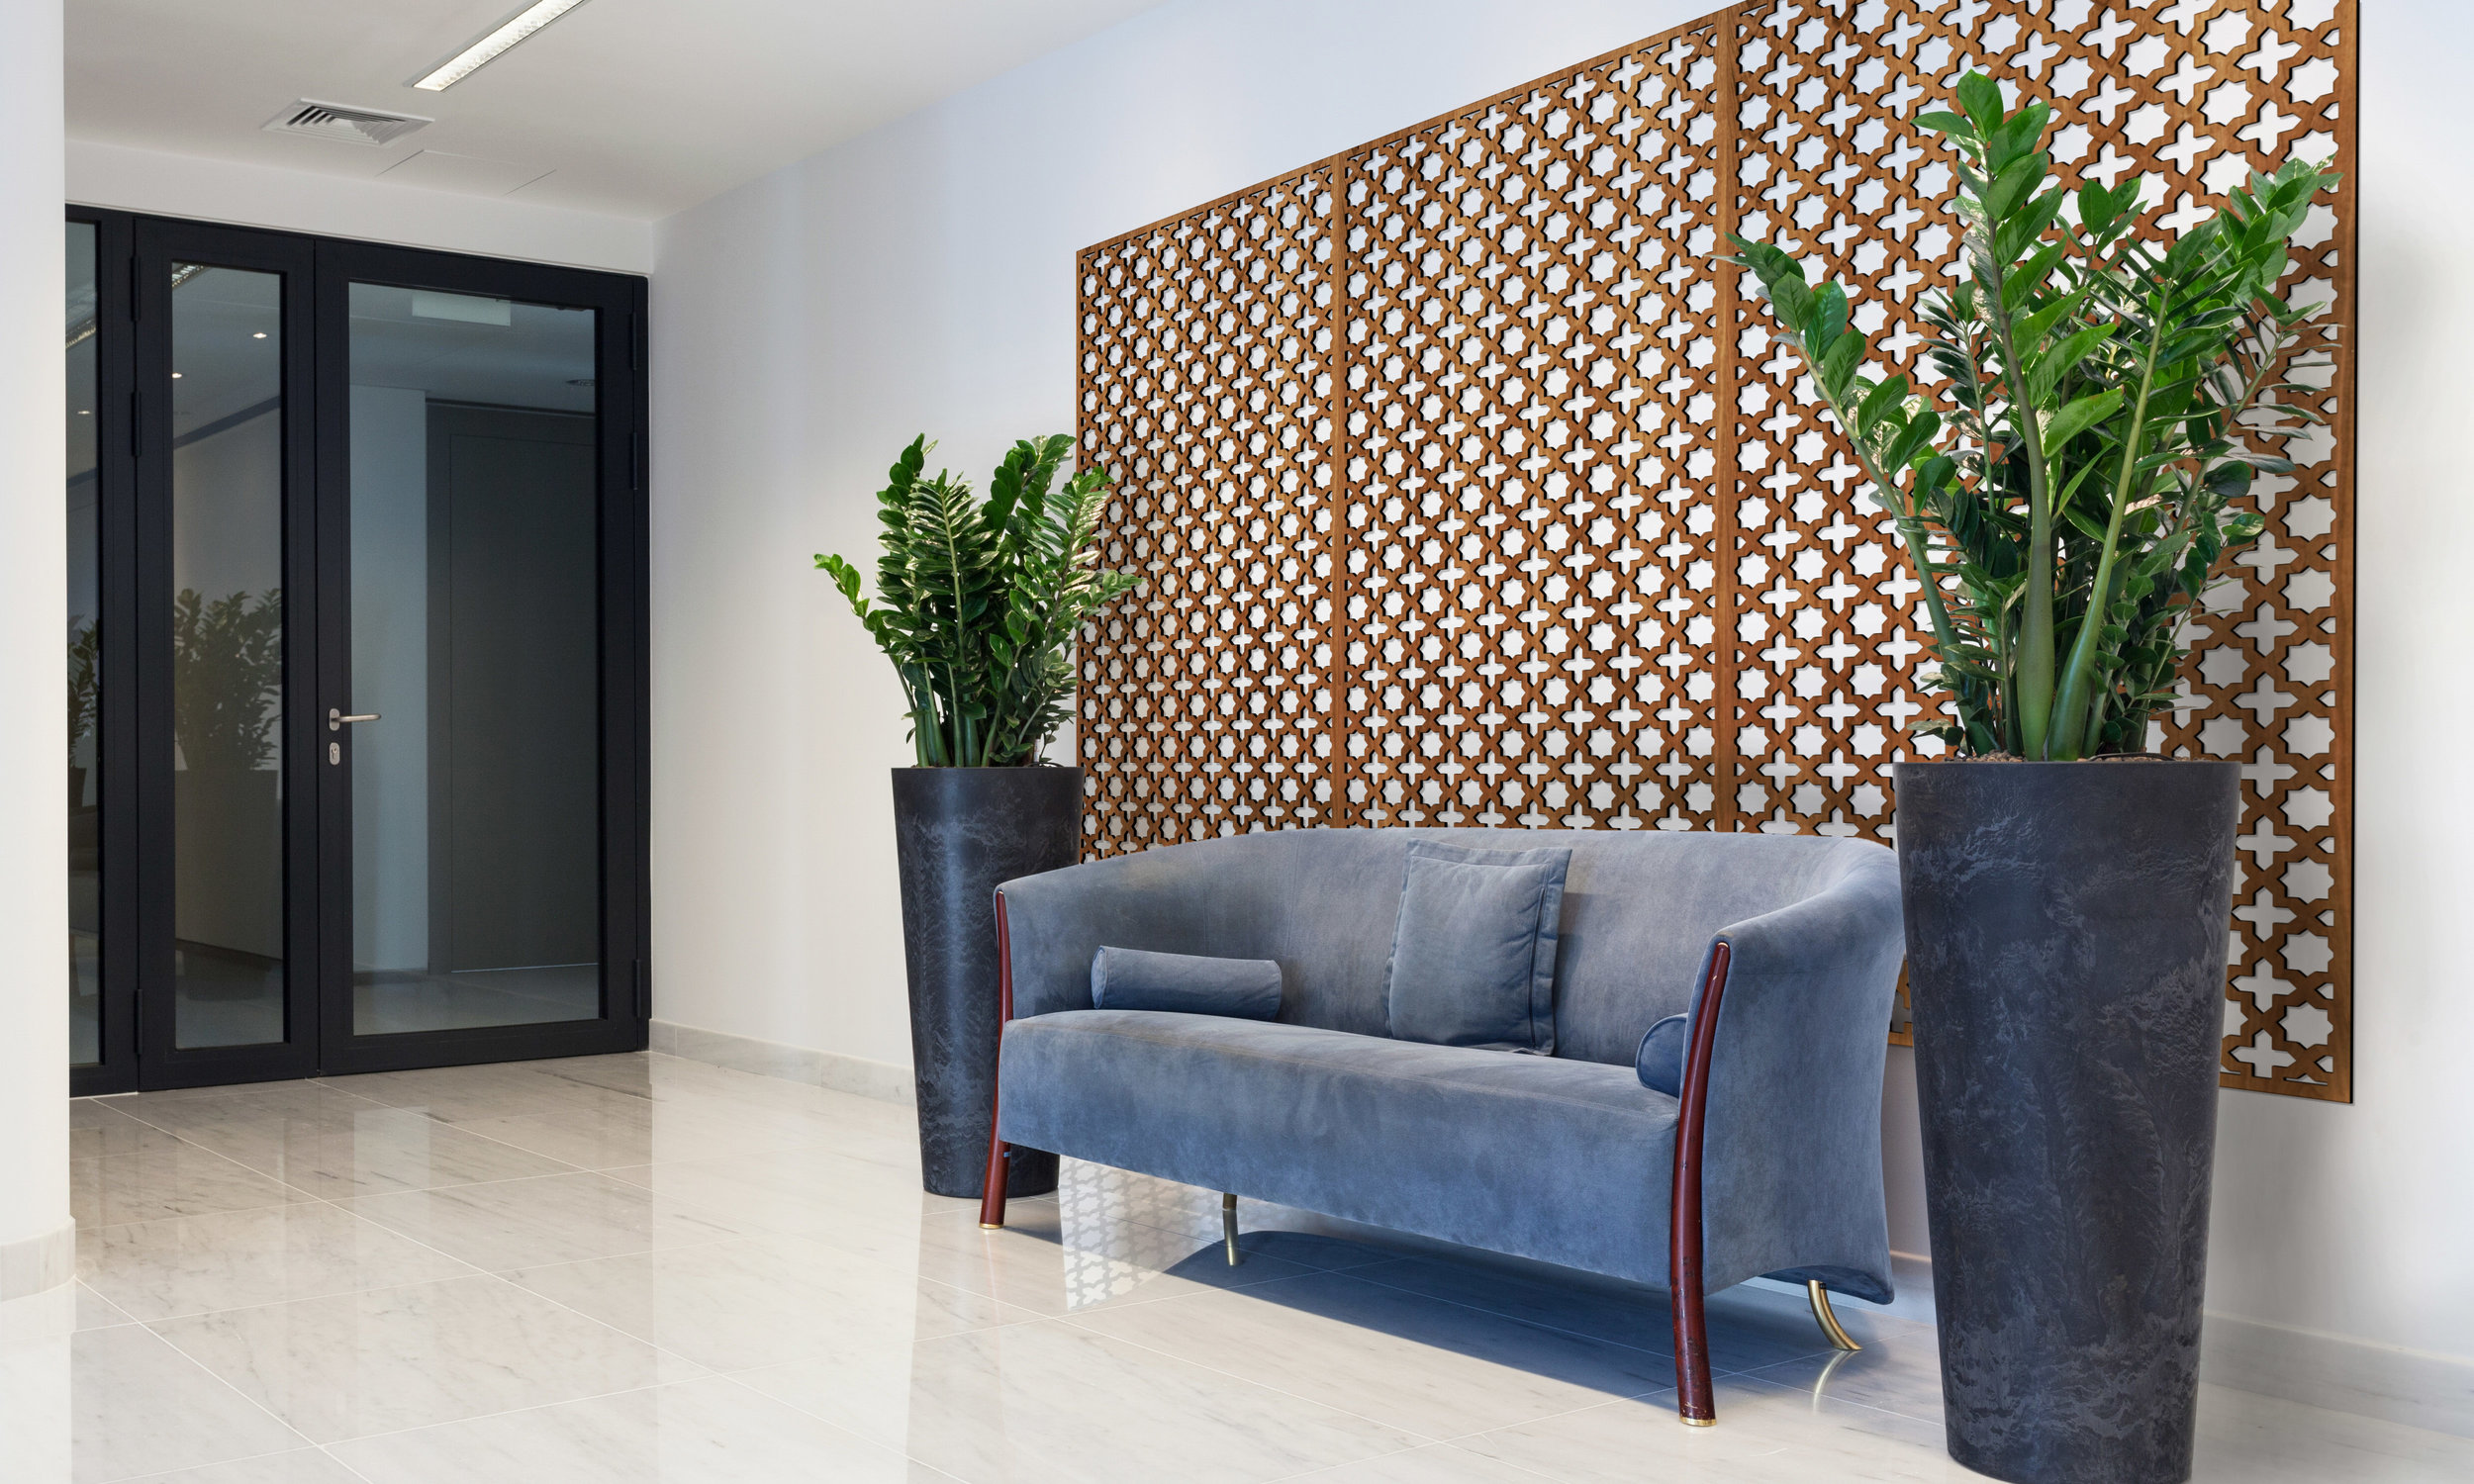 Installation Rendering A   Arabesque decorative office wall panel - shown in Cherry